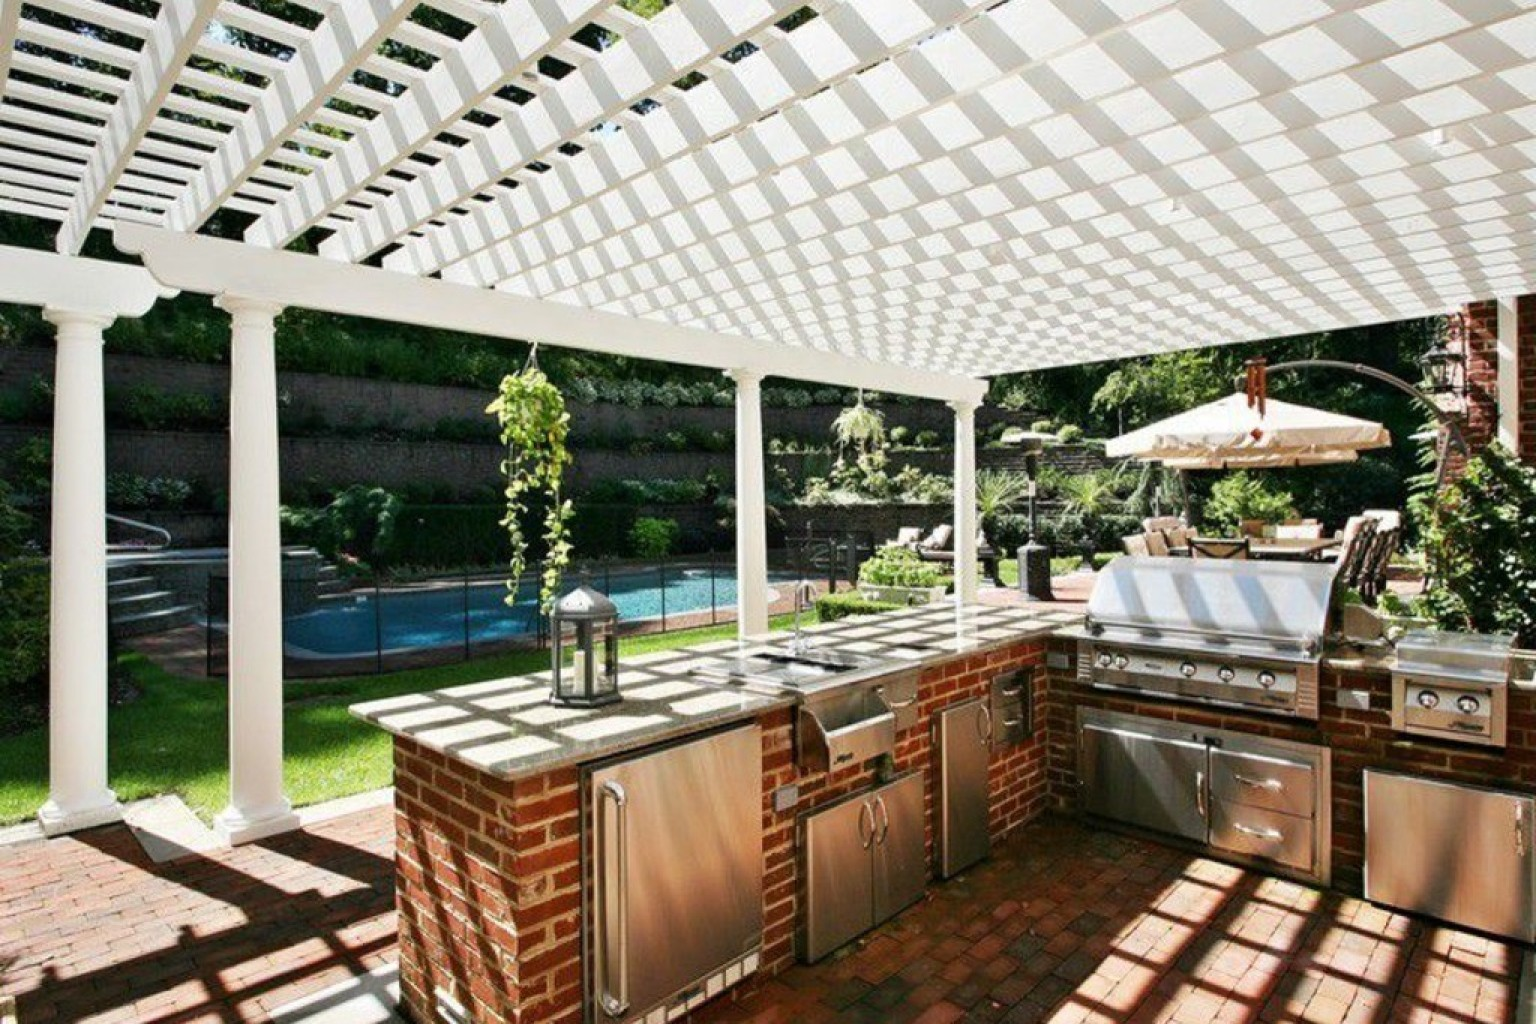 o-OUTDOOR-KITCHENS-facebook.jpg